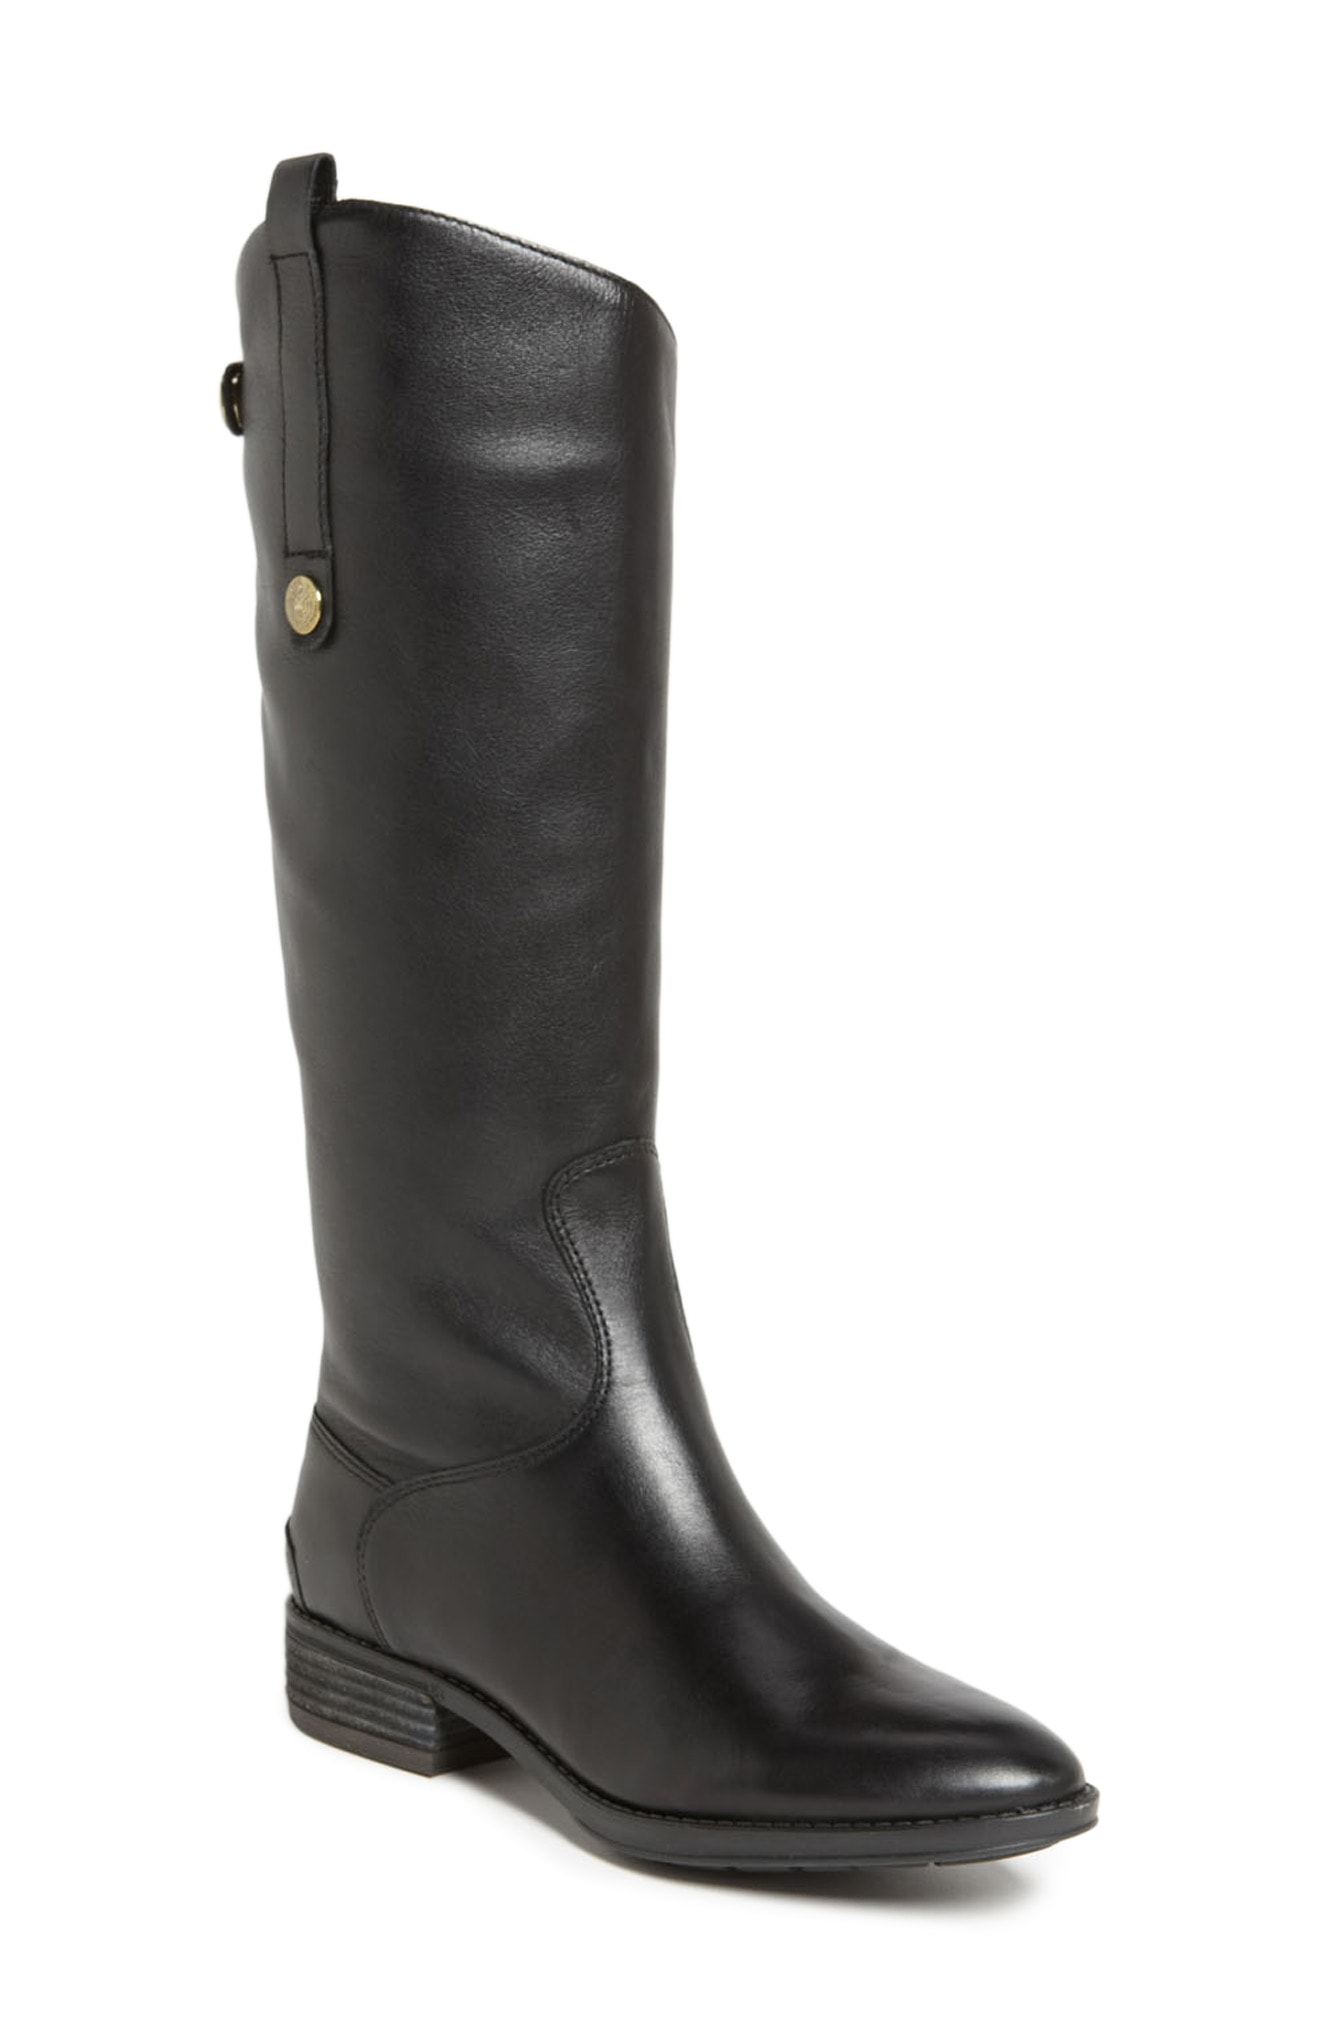 leather boots | Nordstrom